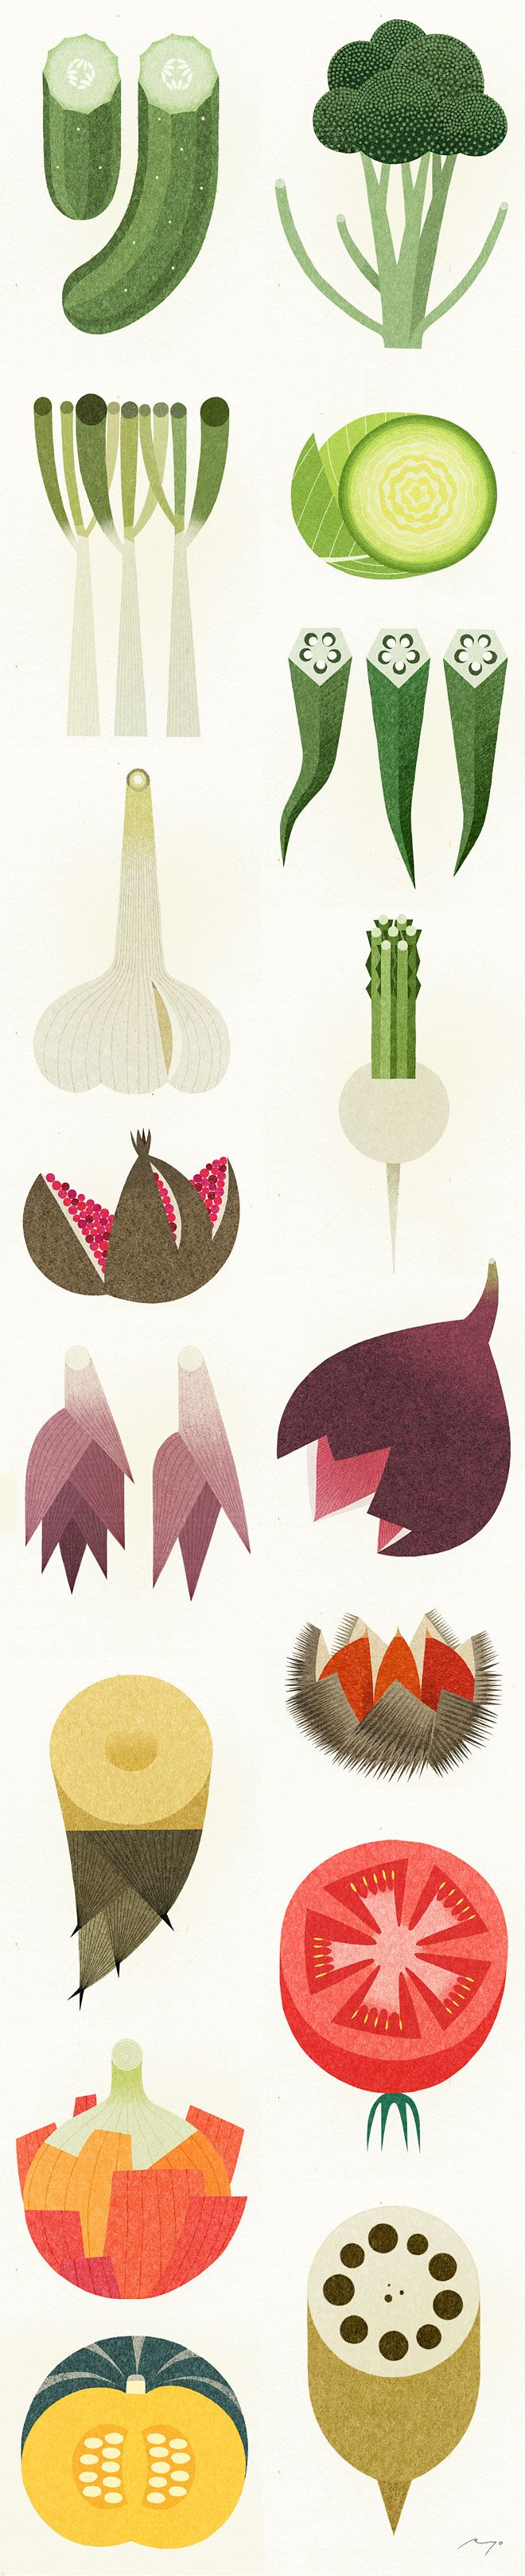 Ryo Takemasa. Reminds me of organic foods. Healthy foods. Good, less processed, simple foods.